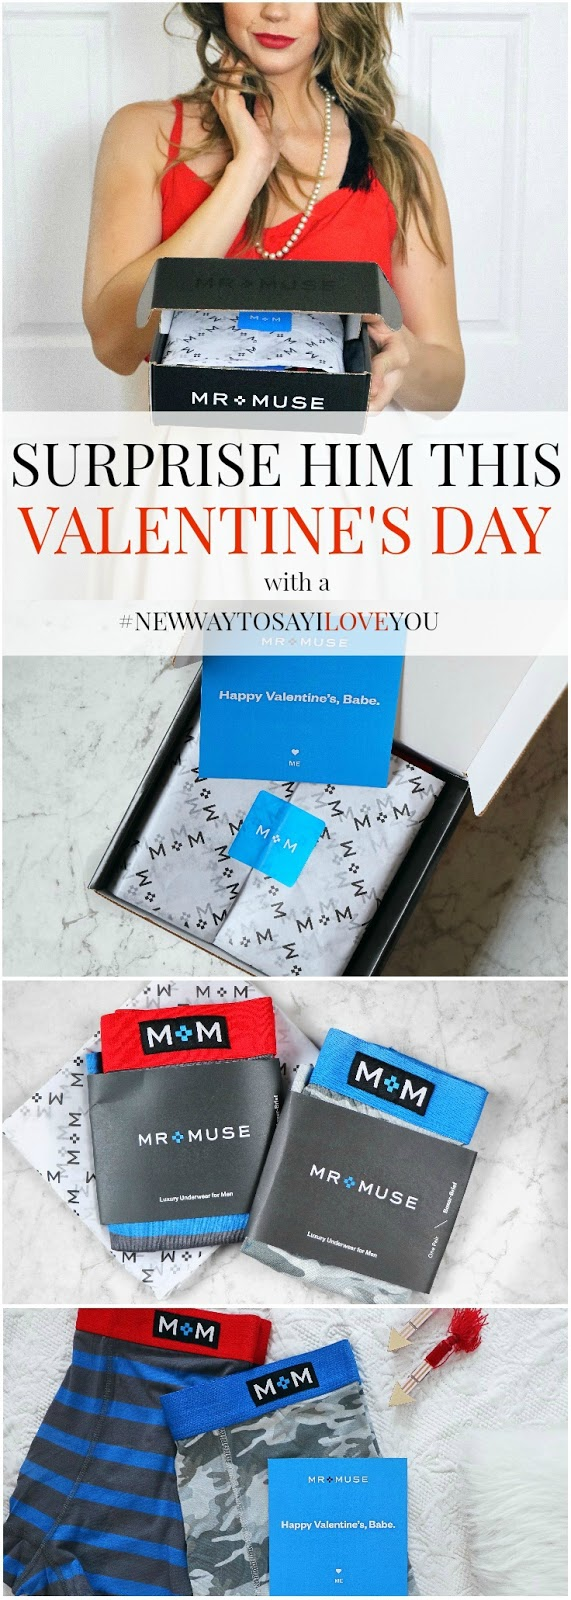 Best Luxury Valentine's Day Gift Ideas For Him